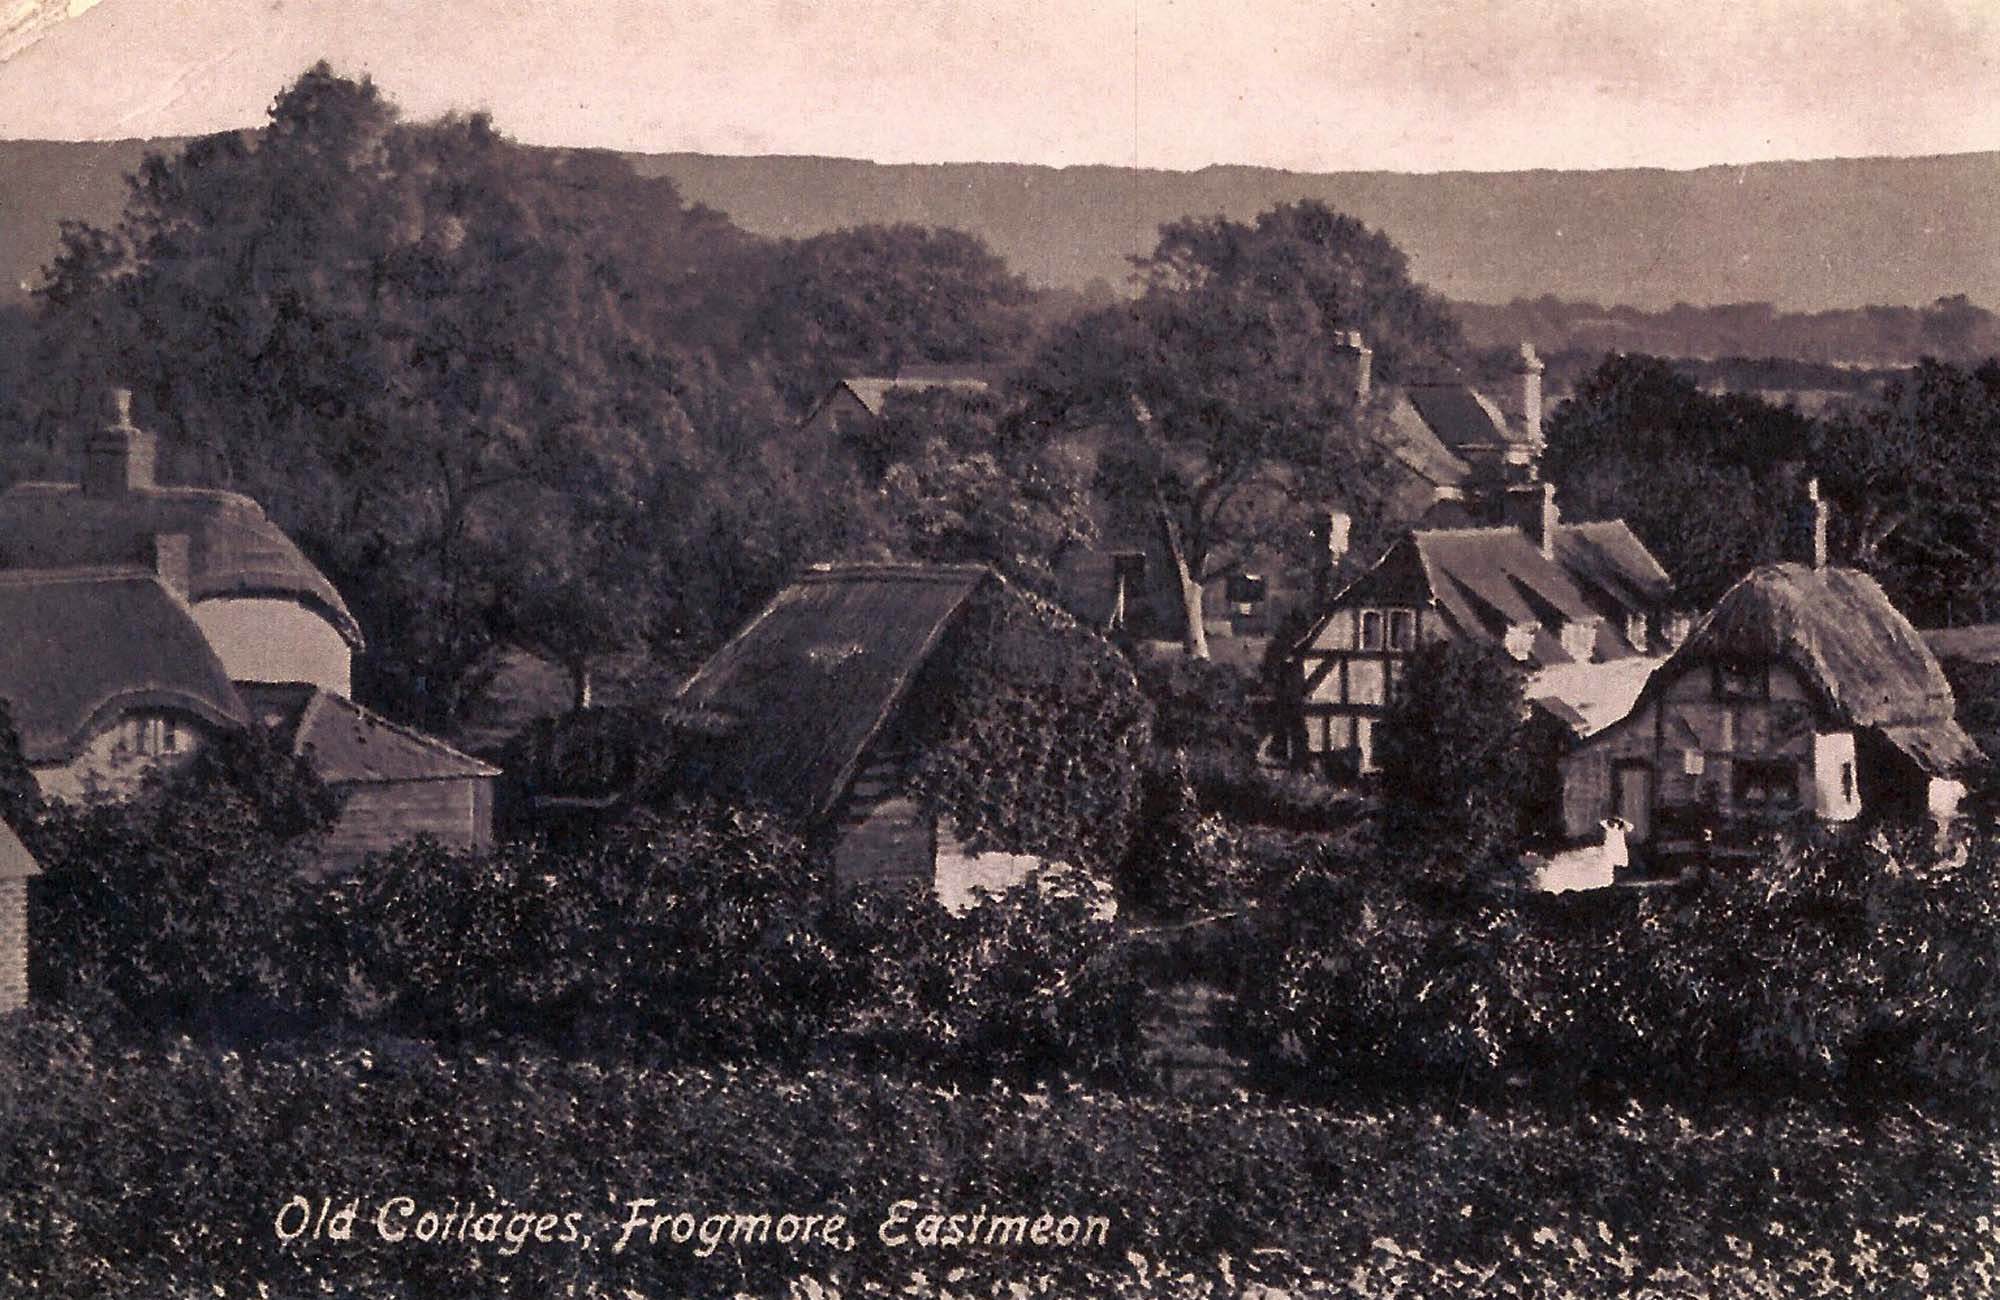 This view of Frogmore was used as a Post Card, probably in the 1890s.